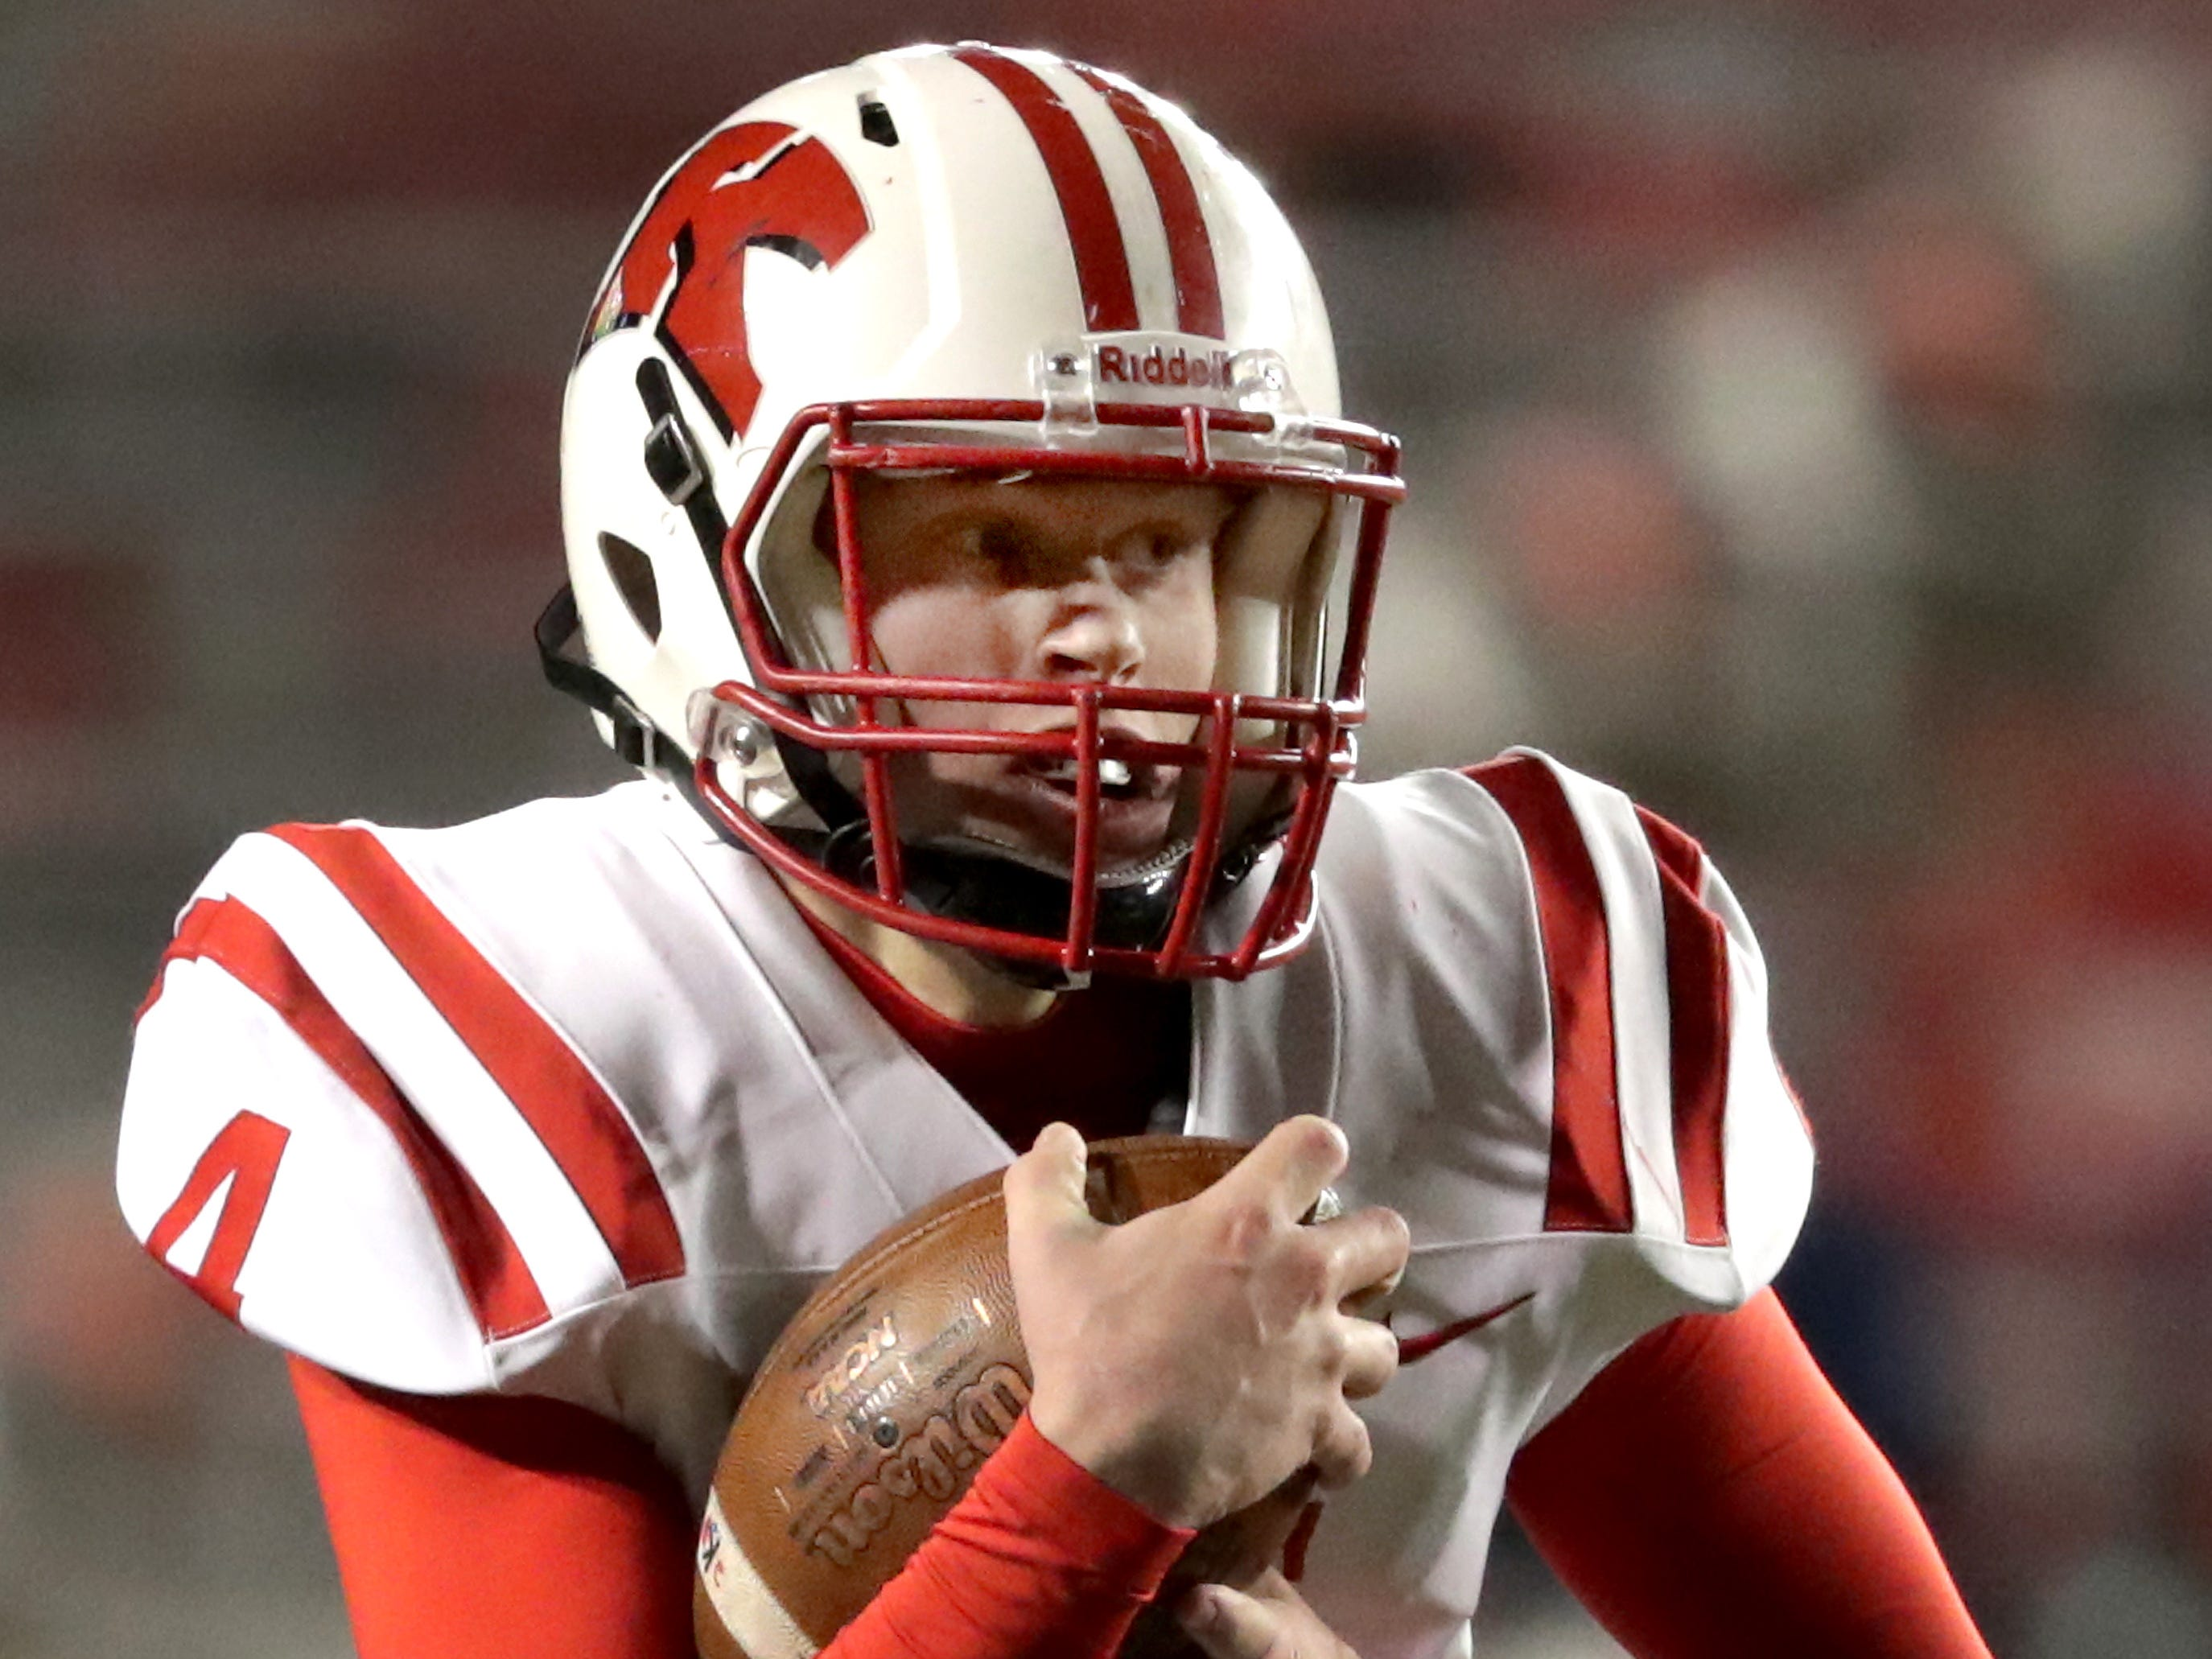 Kimberly High School's #4 Cody Staerkel against Muskego High School during the WIAA Division 1 state championship football game on Friday, November 16, 2018, at Camp Randall in Madison, Wis.